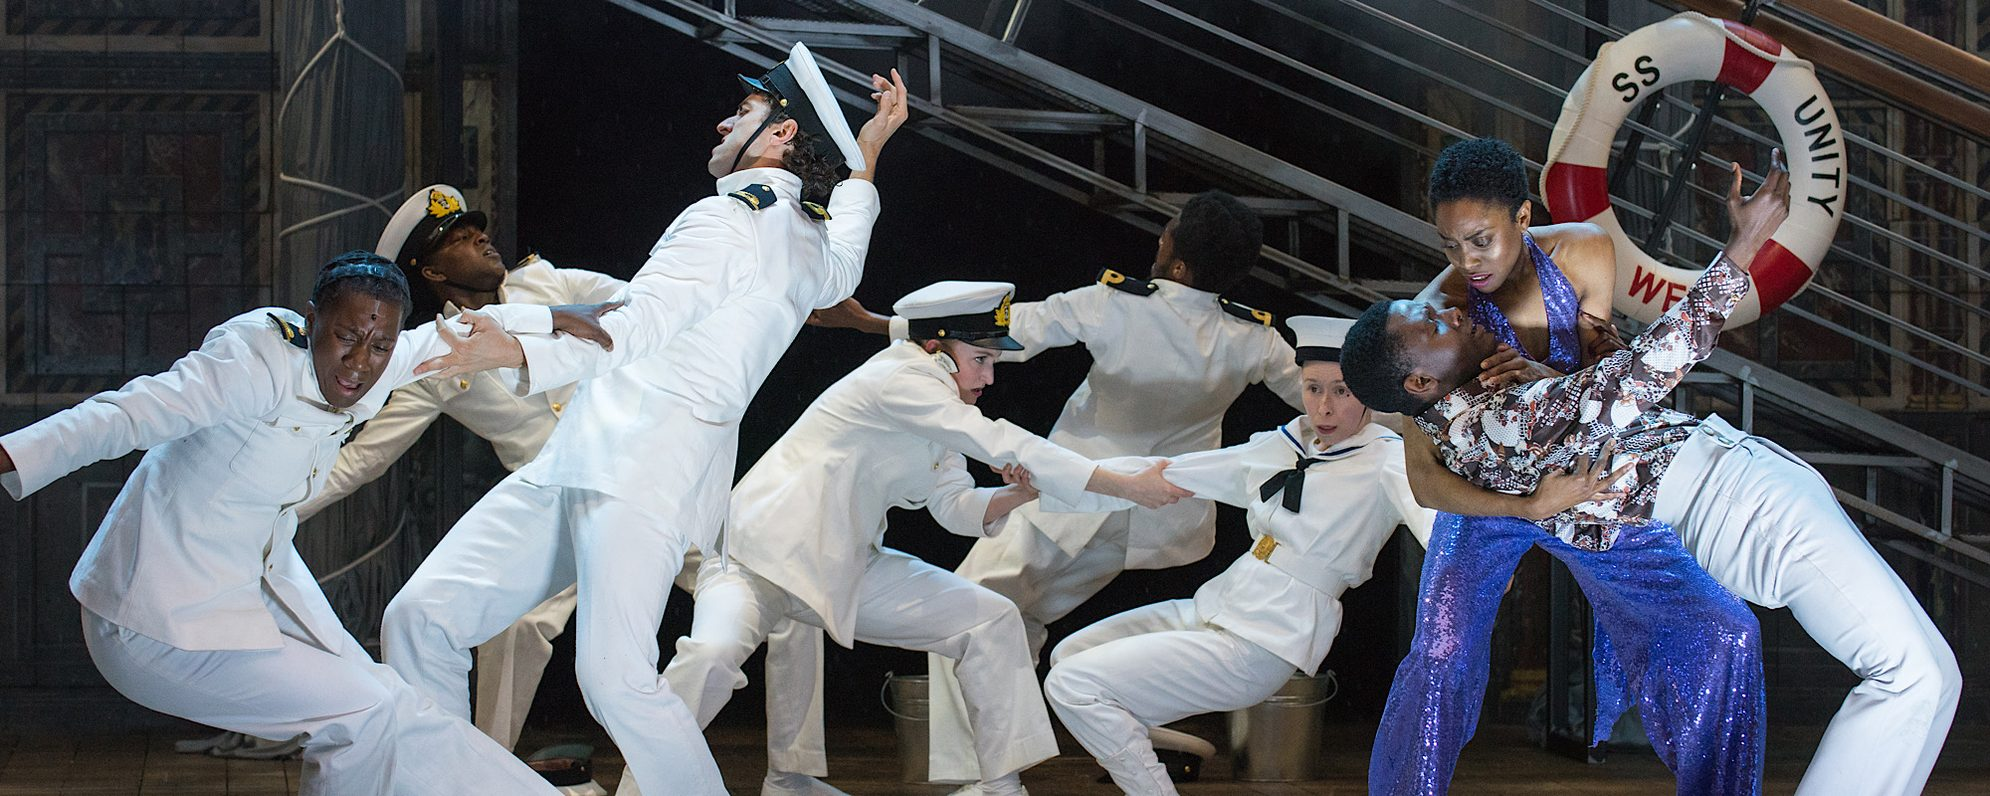 Actors dressed as sailors move in the background whilst two actors in the foreground embrace one another with sad looks on their faces